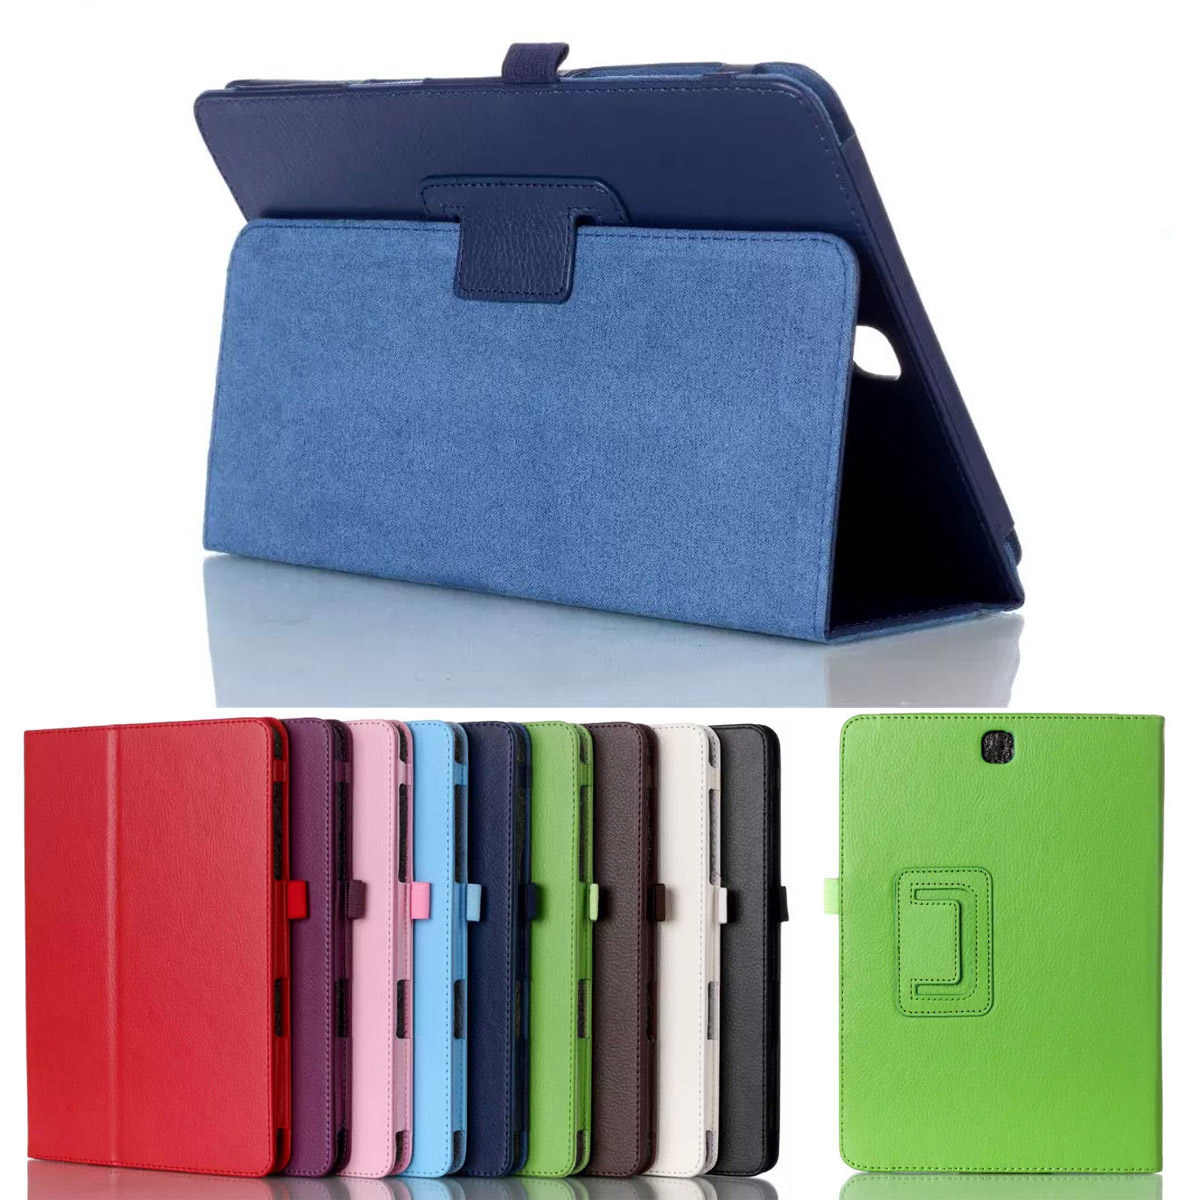 PU Leather Stander Case Voor Samsung Galaxy Tab S2 9.7 inch T810 T813 T815 T819 Ultra Slim Cover Voor Samsung t810 T815